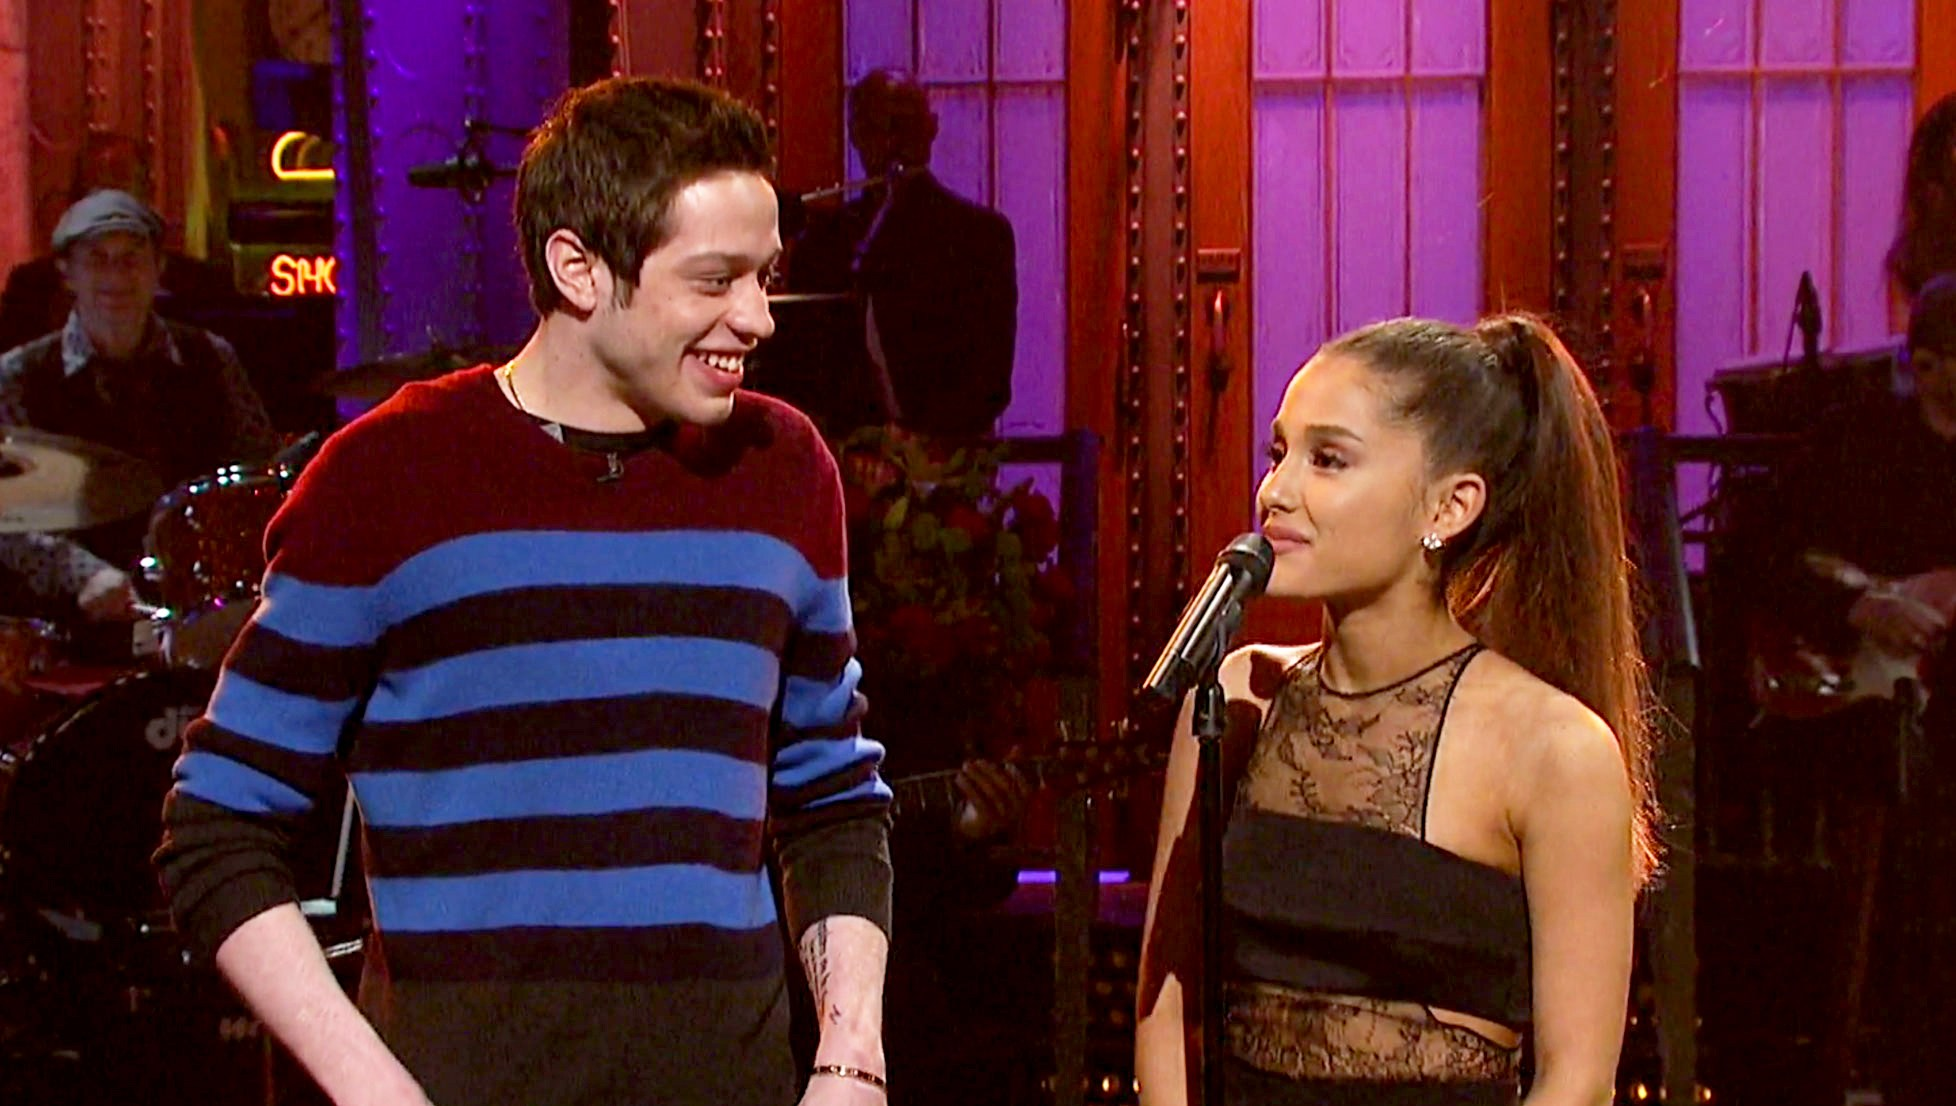 Pete Davidson and Ariana Grande on 'SNL'